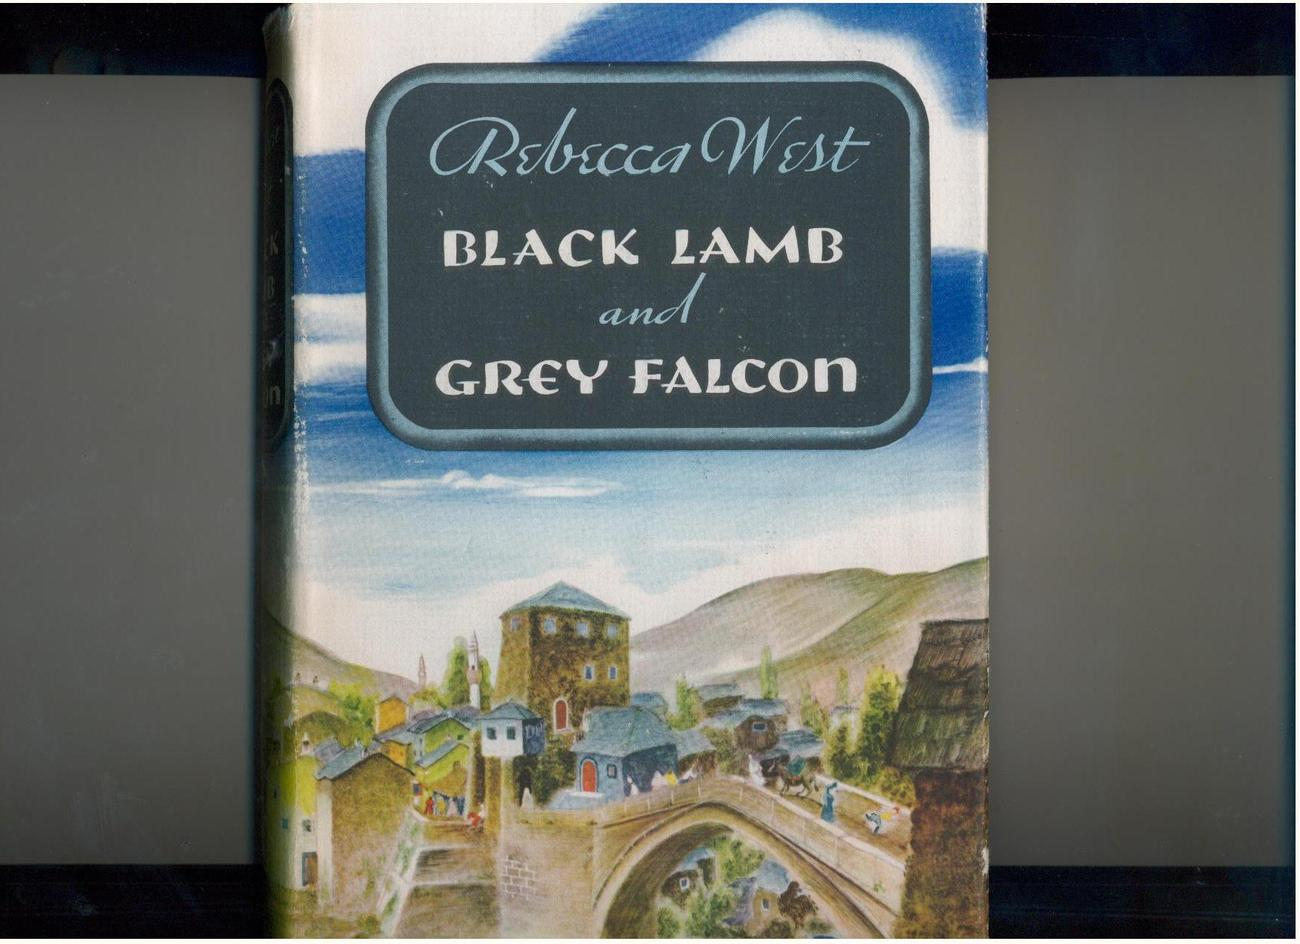 Rebecca West  BLACK LAMB & GREY FALCON  1941  hb/dj  1st ed.